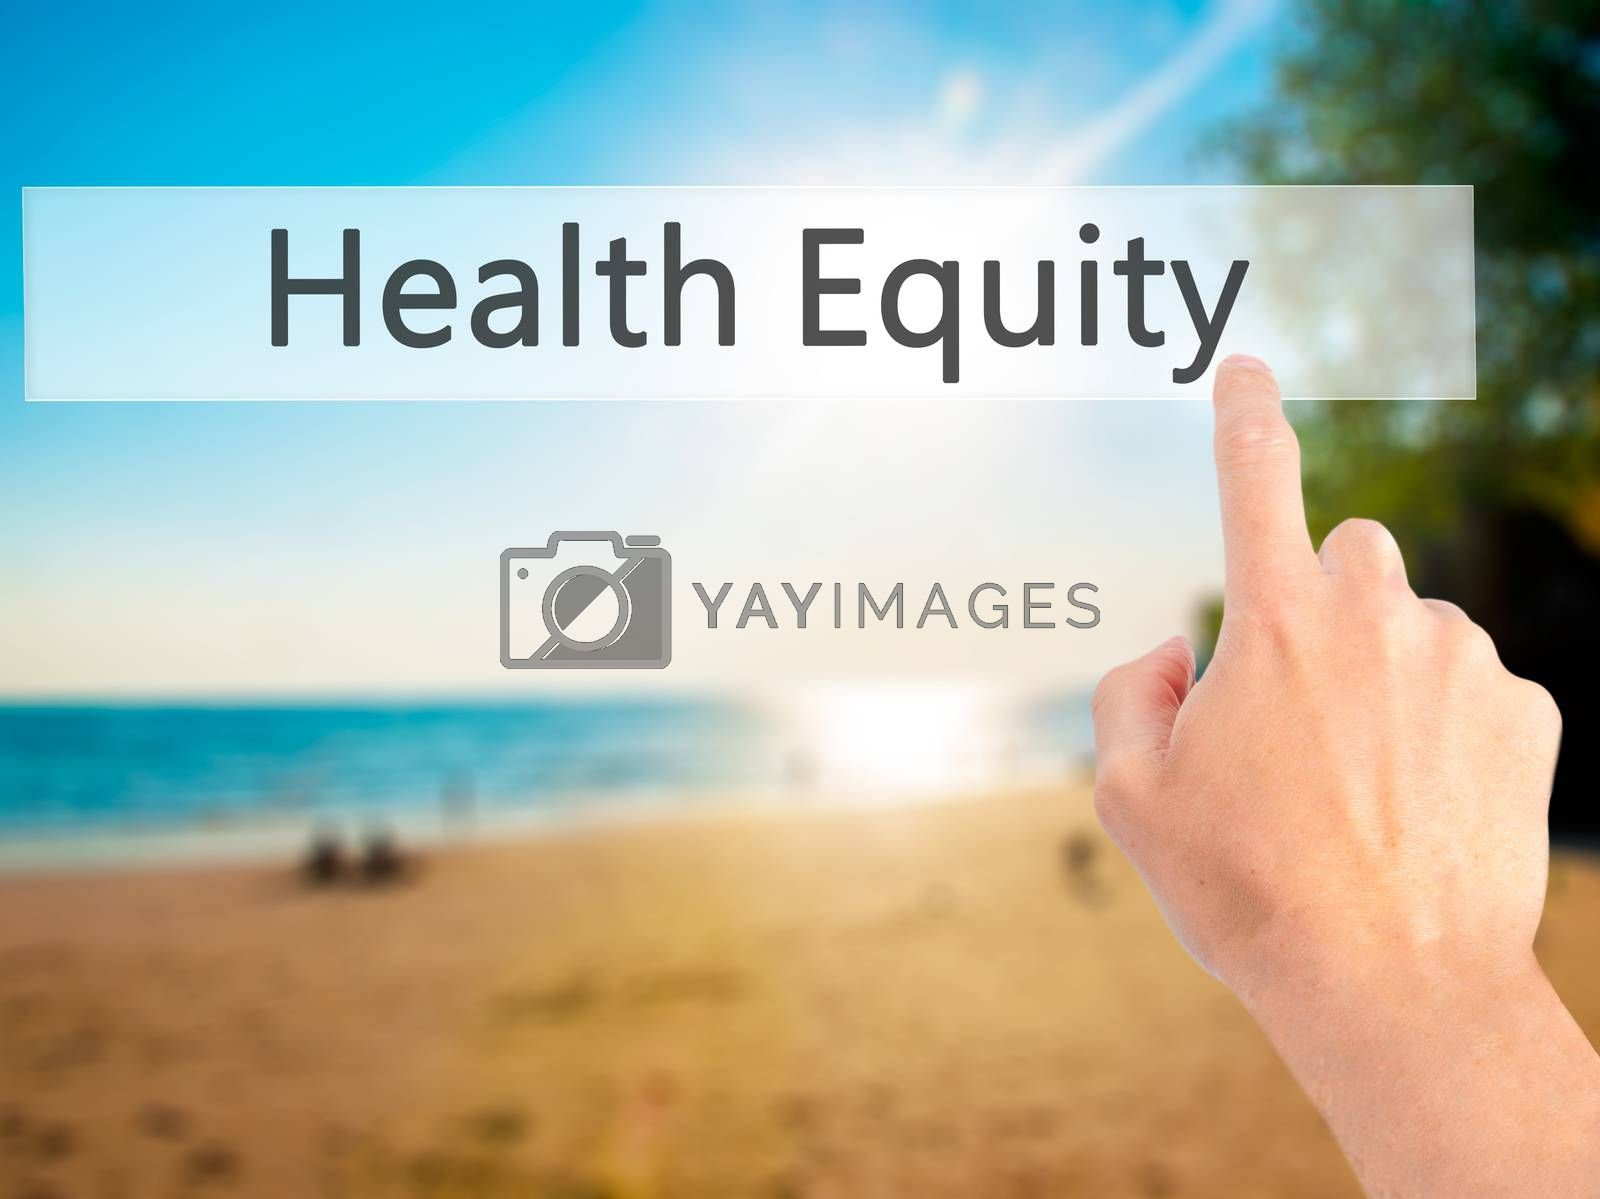 Health Equity - Hand pressing a button on blurred background con by netsay.net